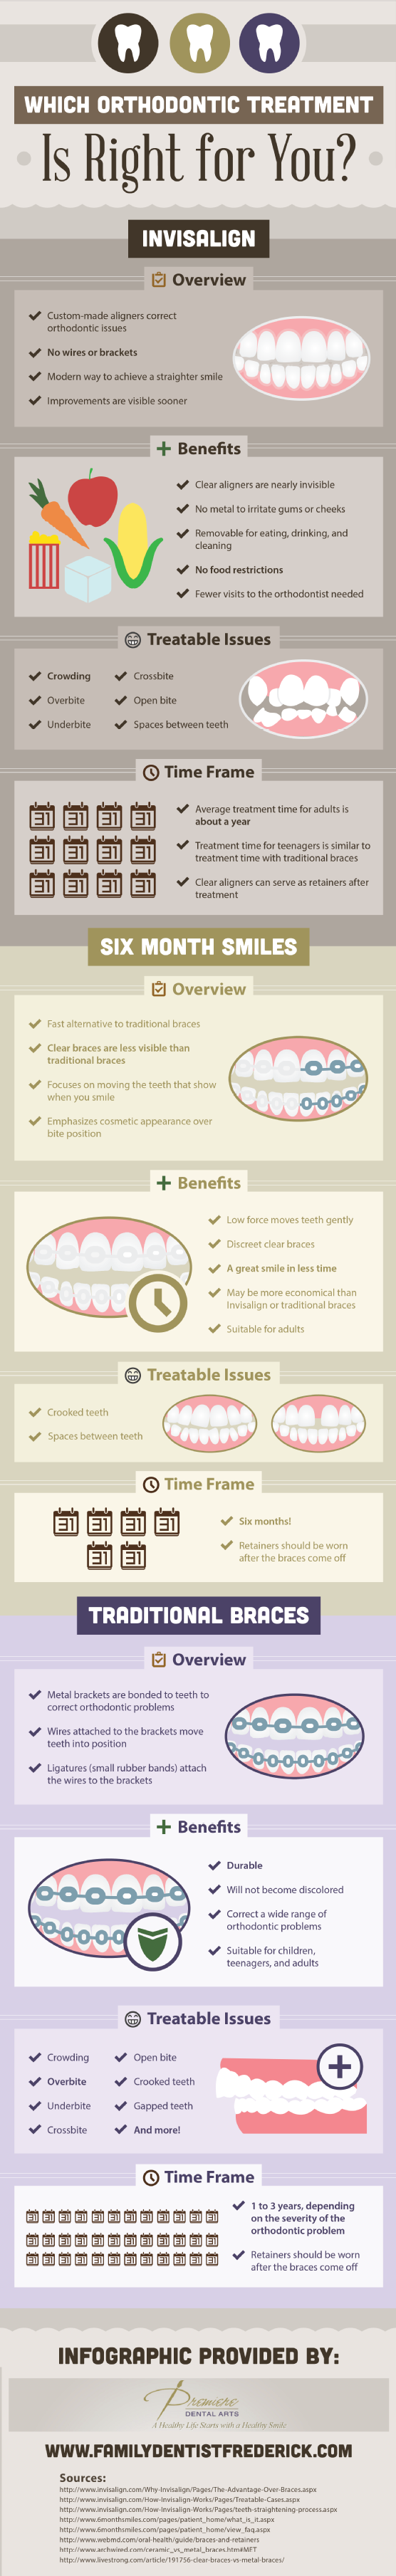 which-orthodontic-treatment-is-right-for-you_518c8b8b93aff